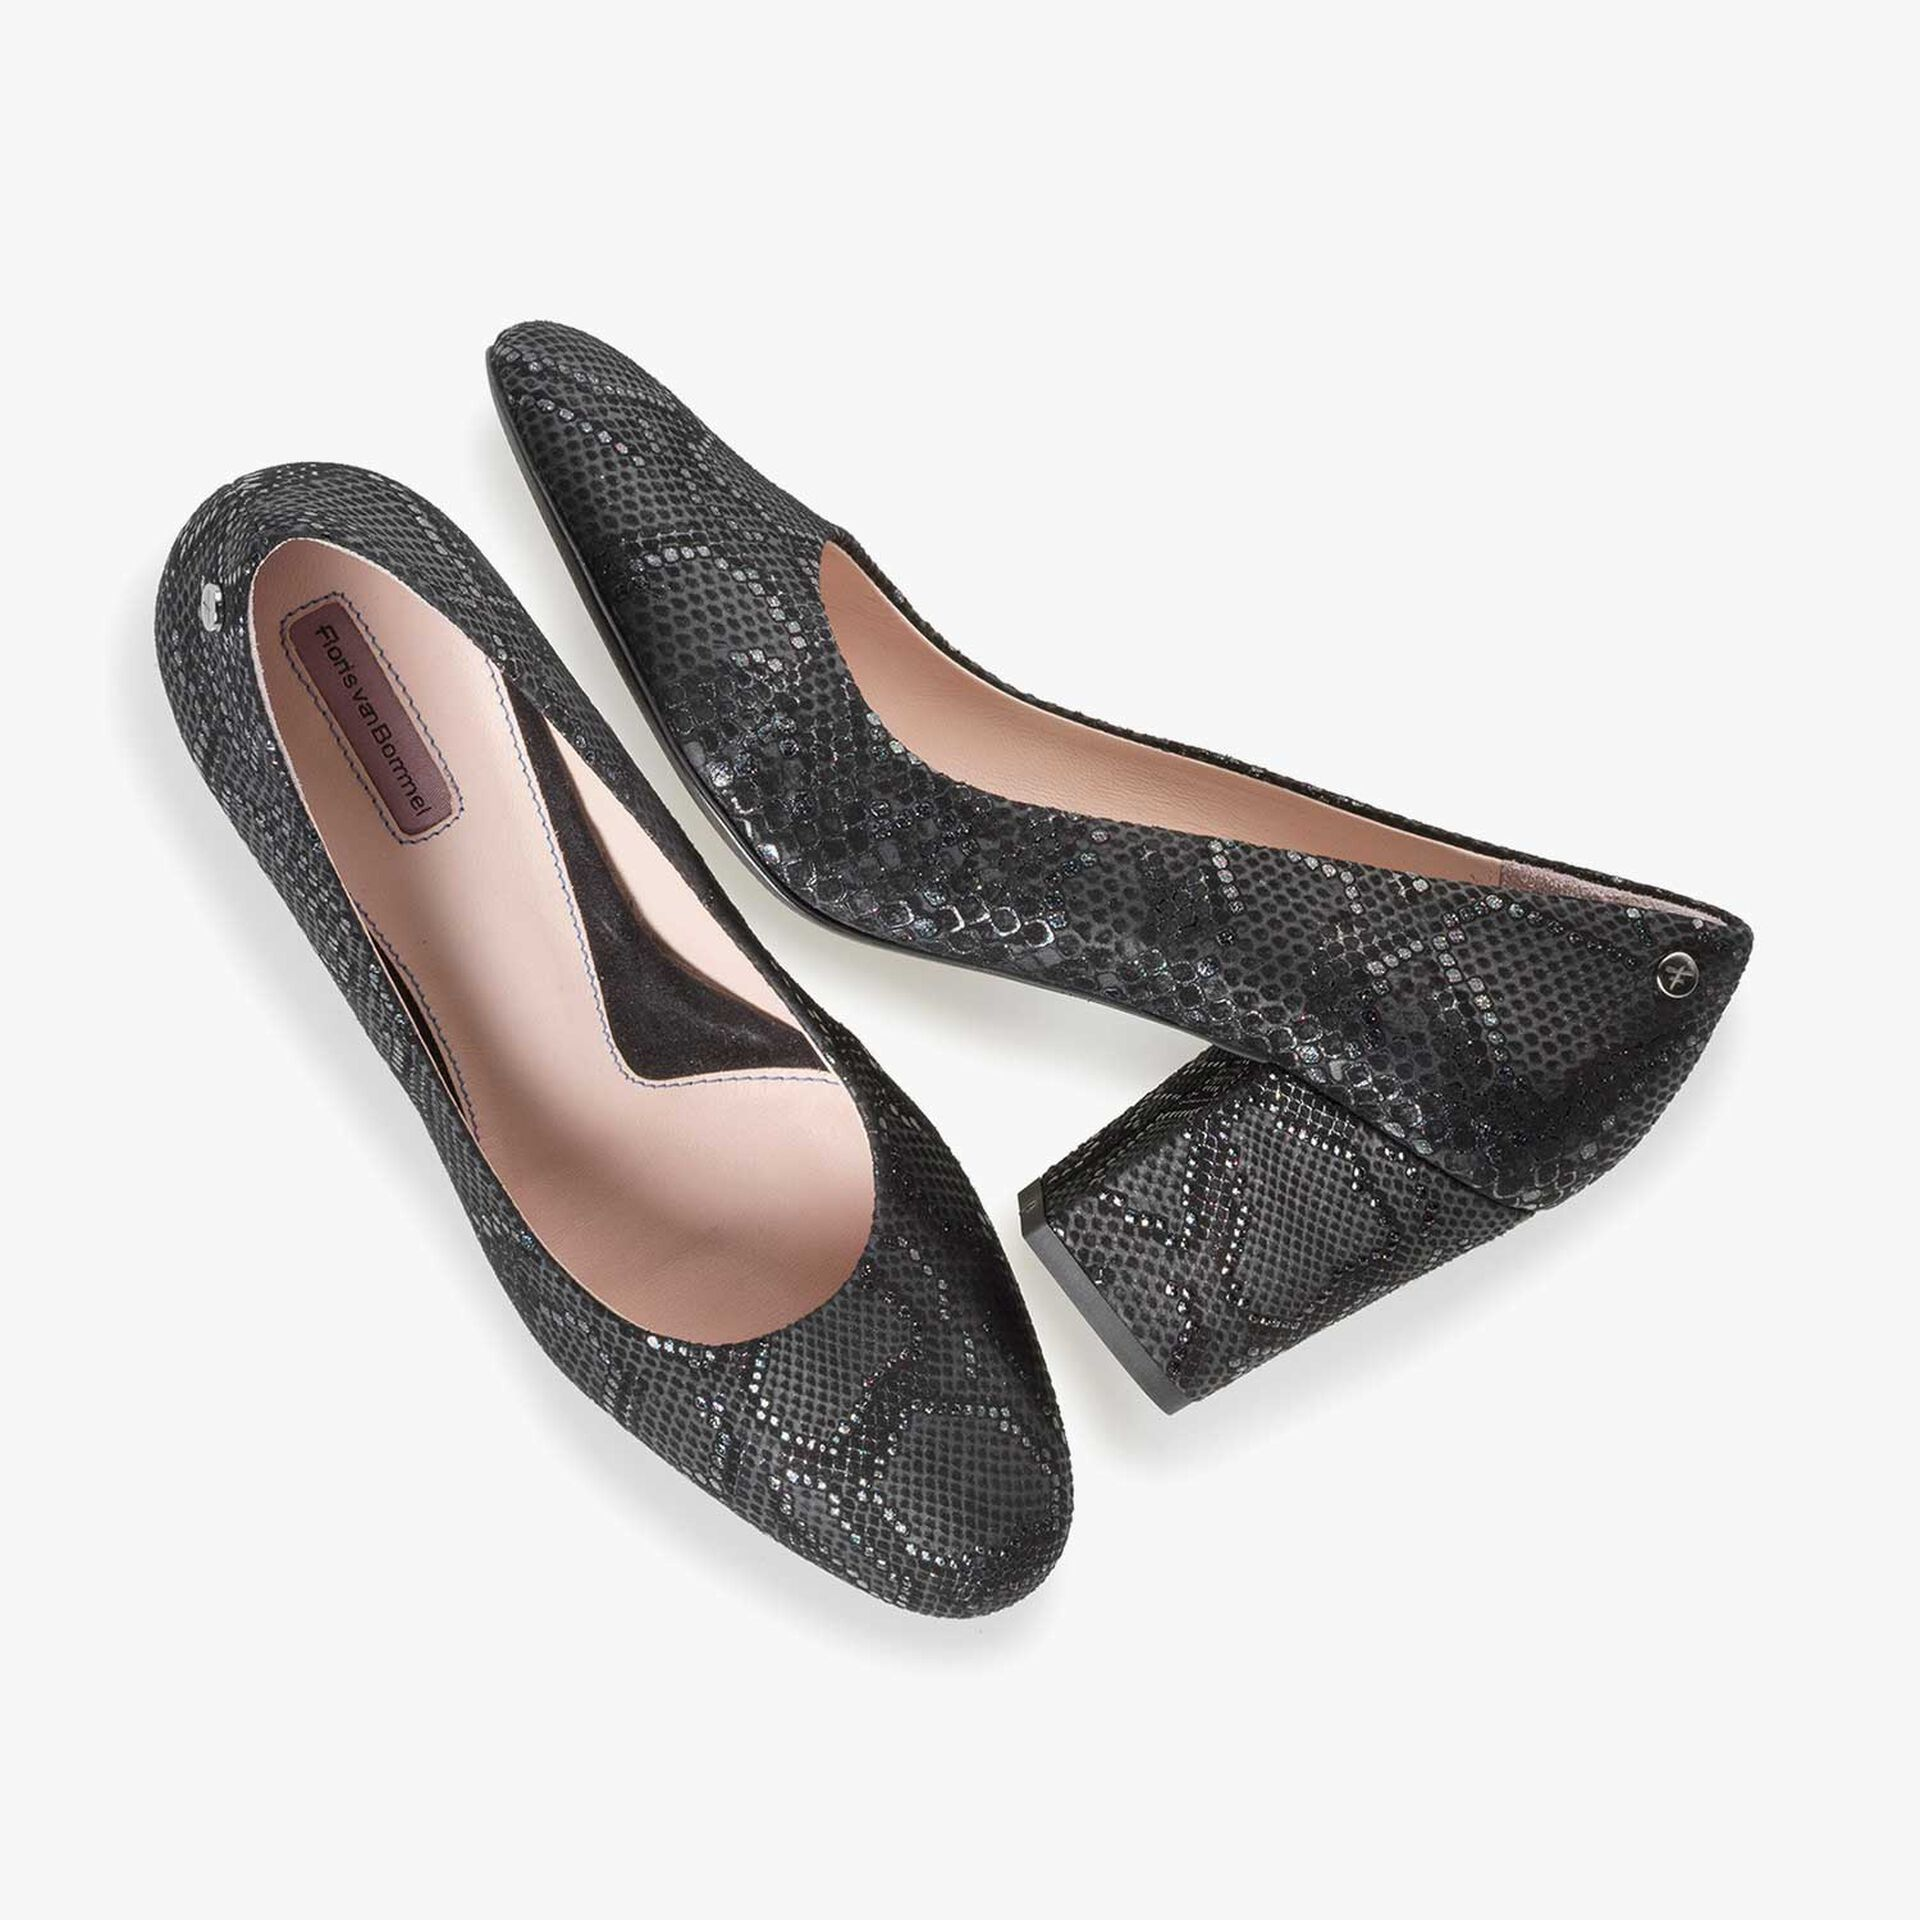 Black leather high heels with snake print